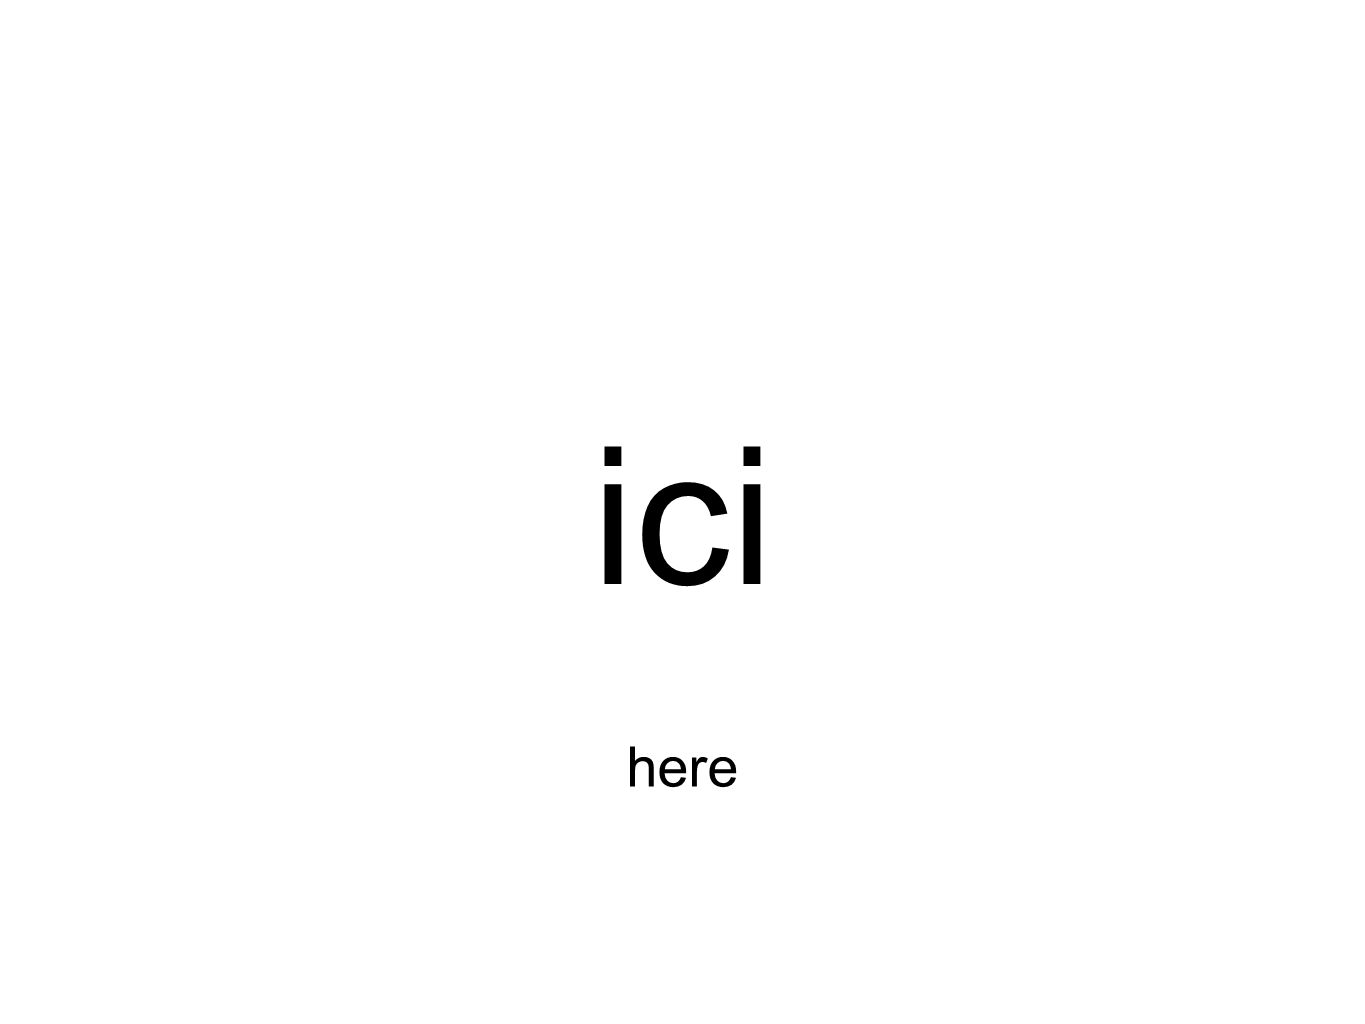 ici here